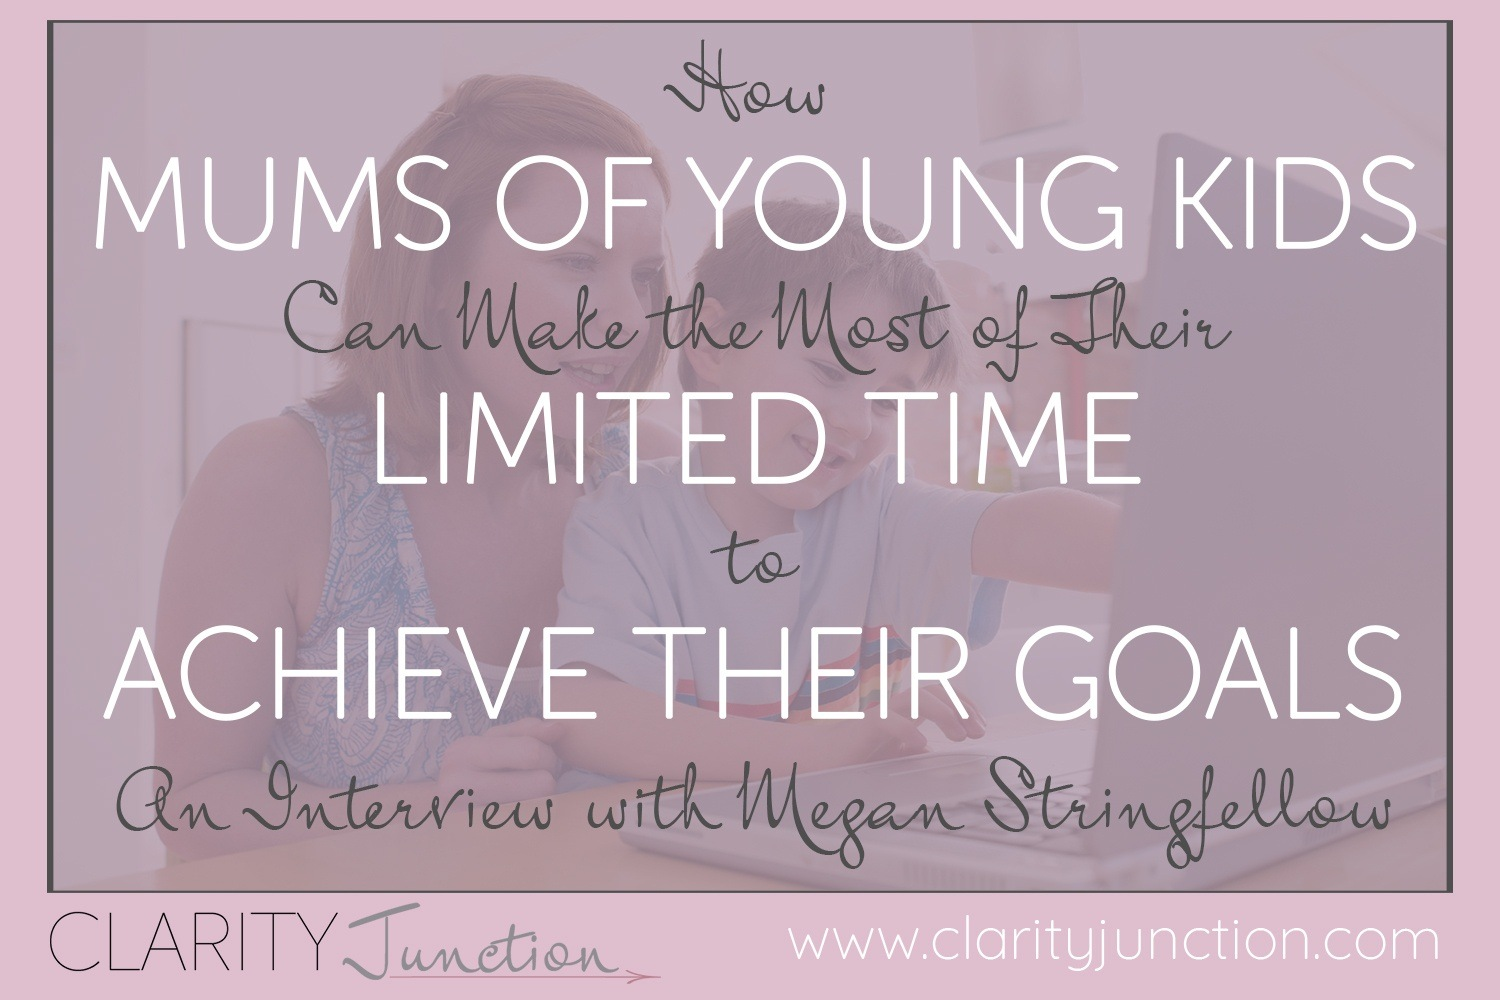 How Mums of Young Kids Can Make the Most of Their Limited Time to Achieve Their Goals